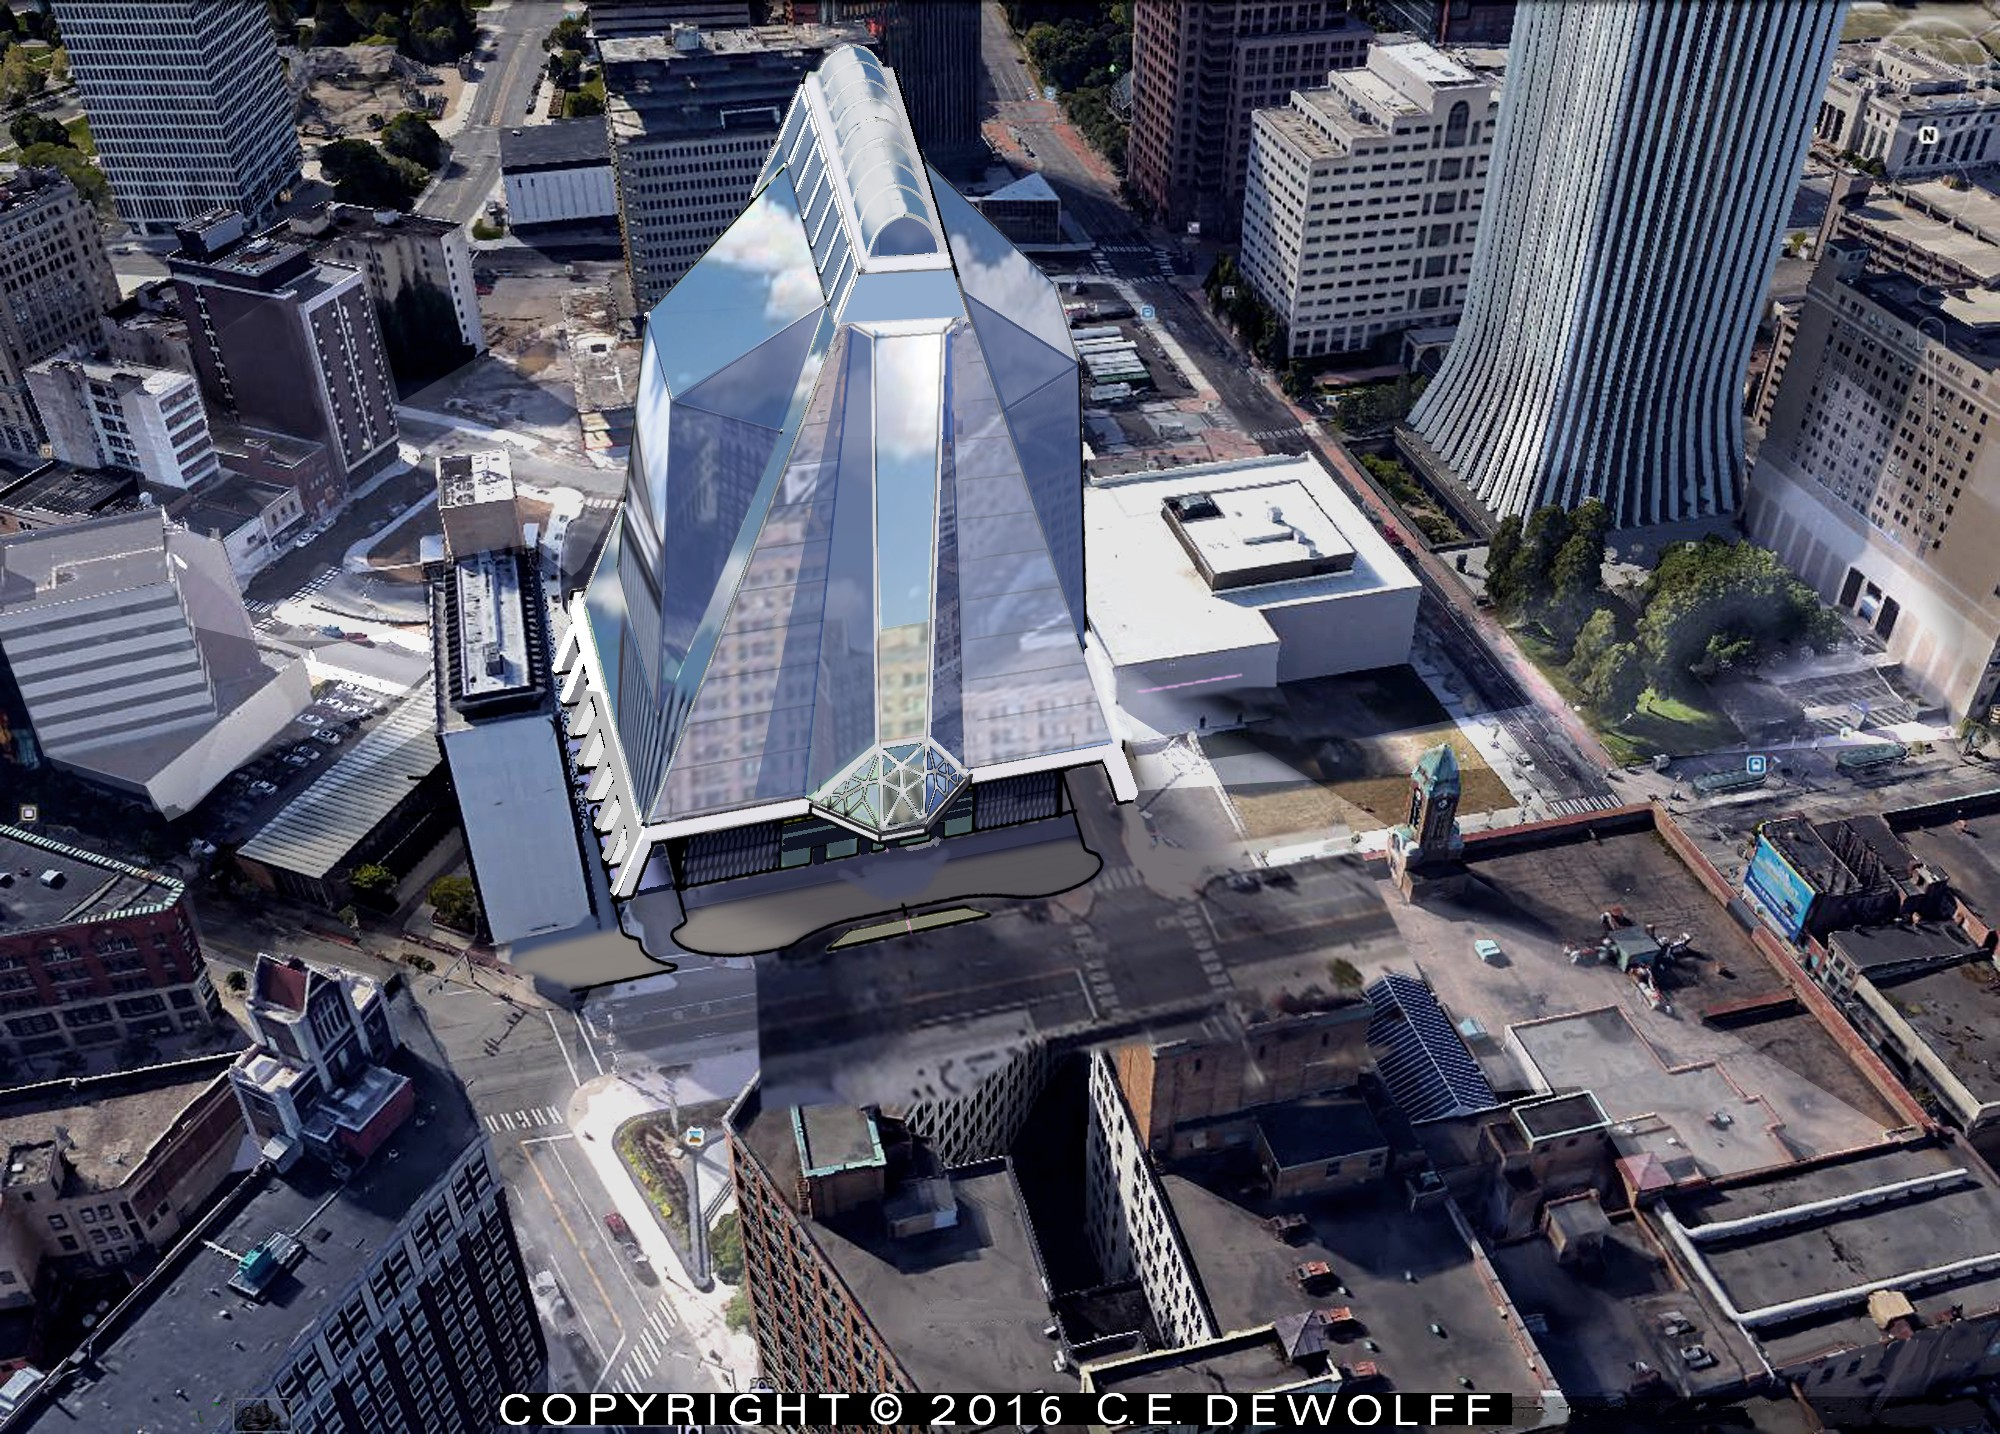 Rendering of Parcel 5 Proposal by Fraser Smillie [PHOTO: DeWolff Partnership Architects]